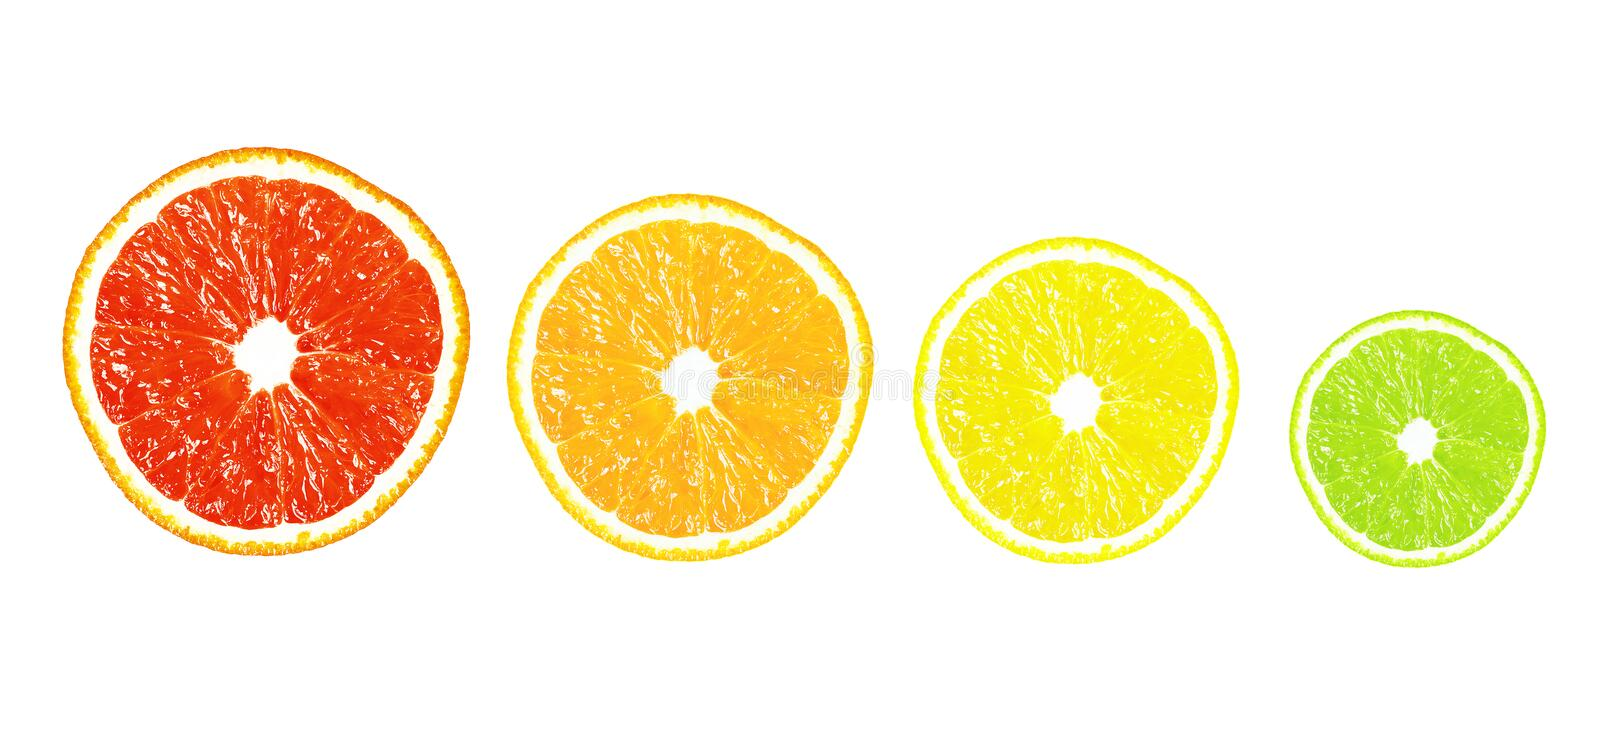 Half of citrus on a white background stock photo